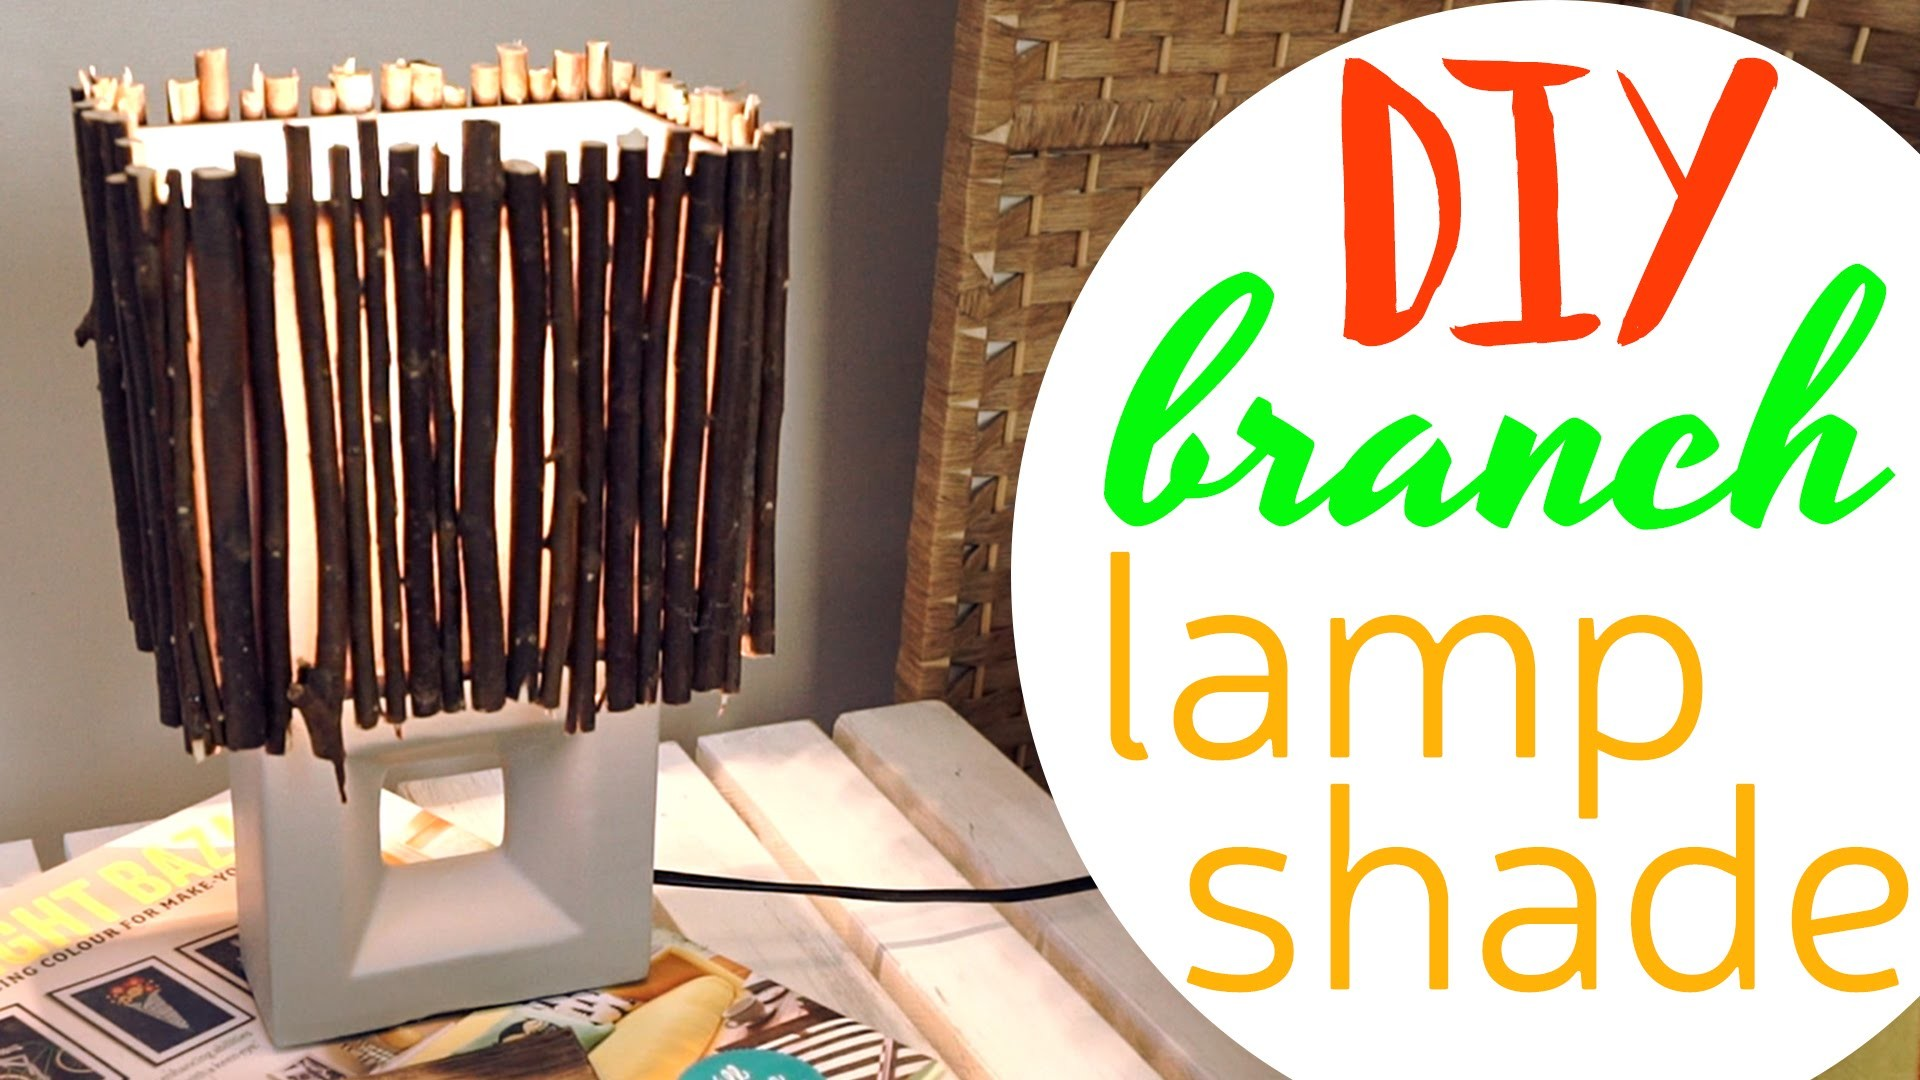 DIY: Branch Lamp Shade - Creativewithlove.com